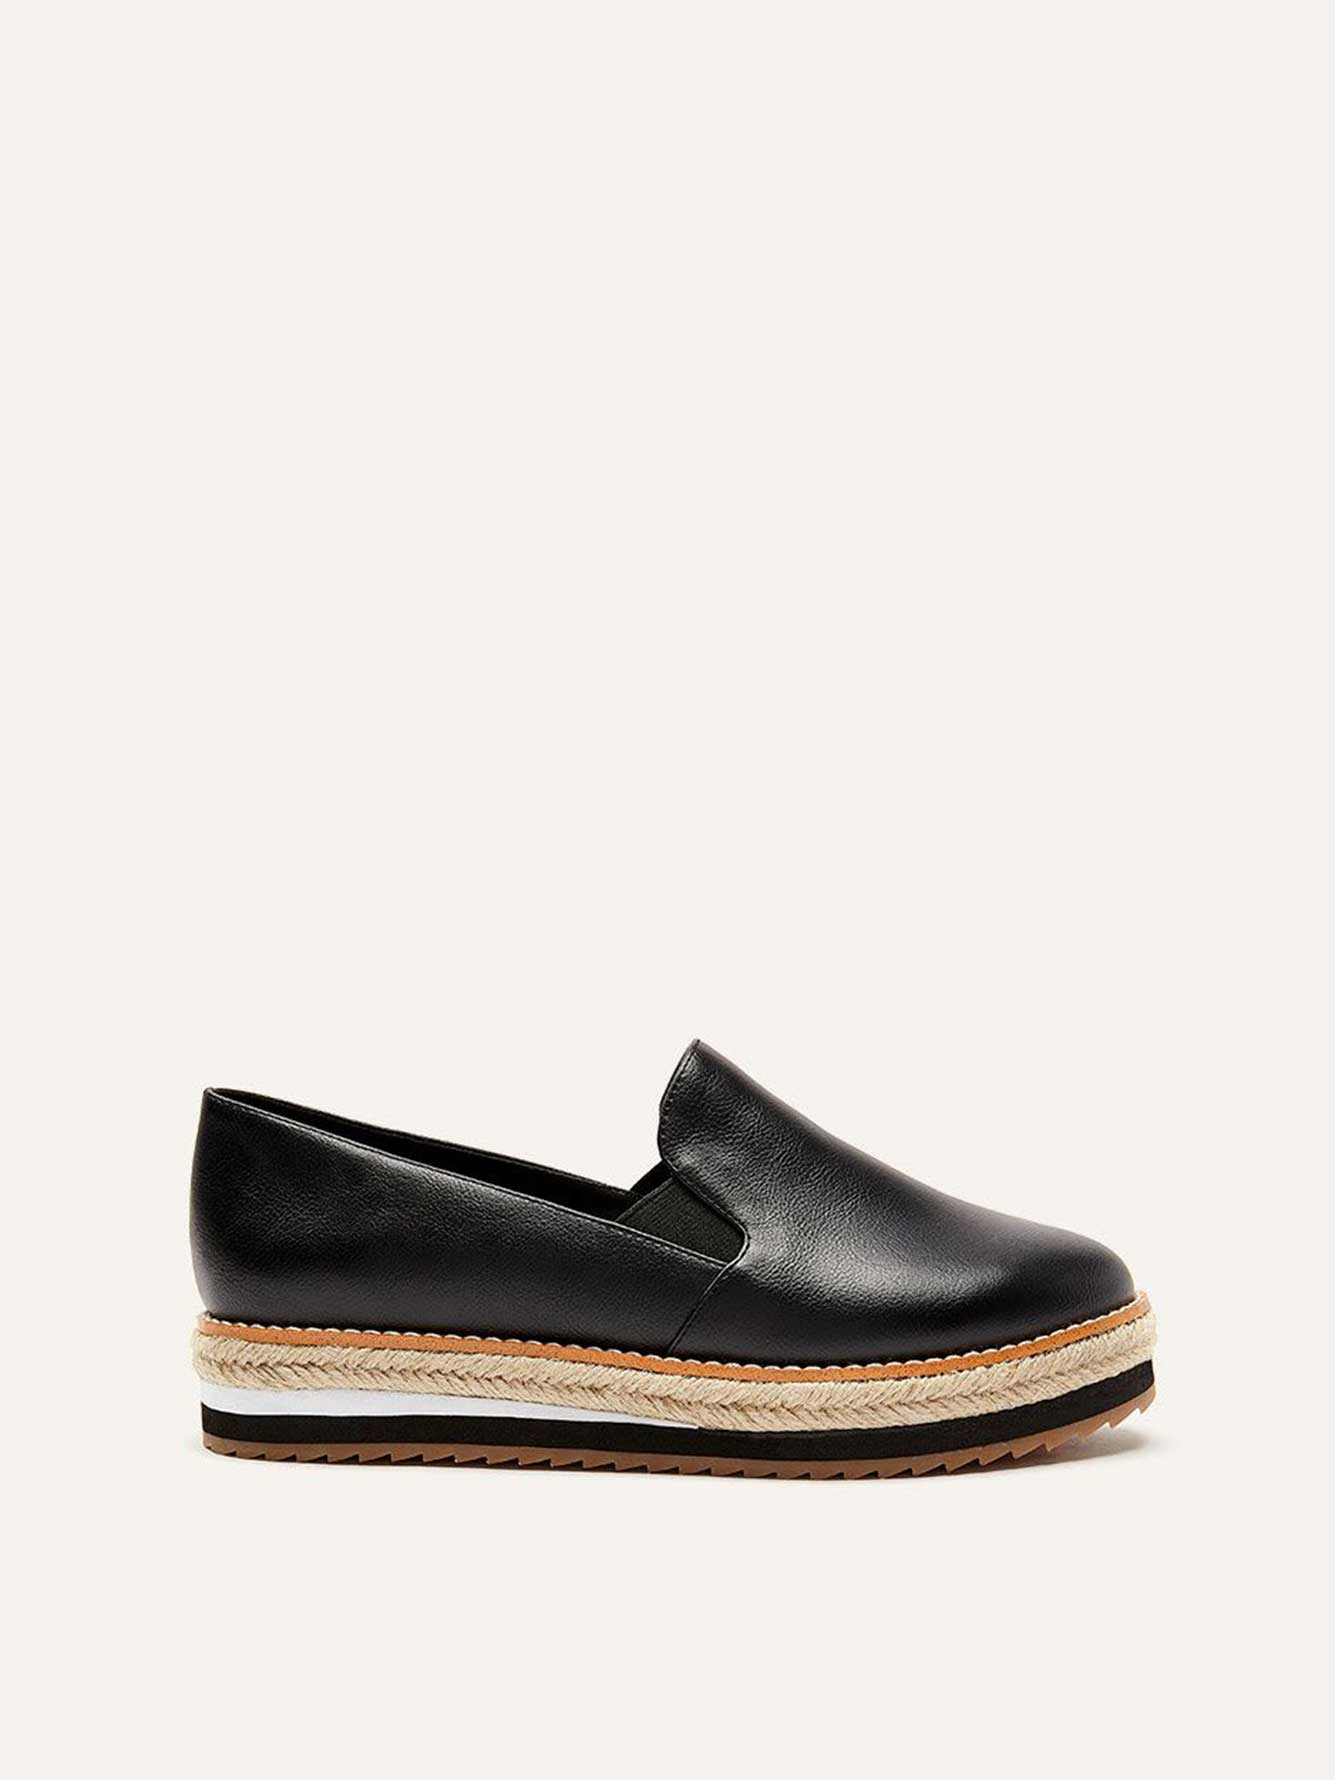 Wide Platform Loafers